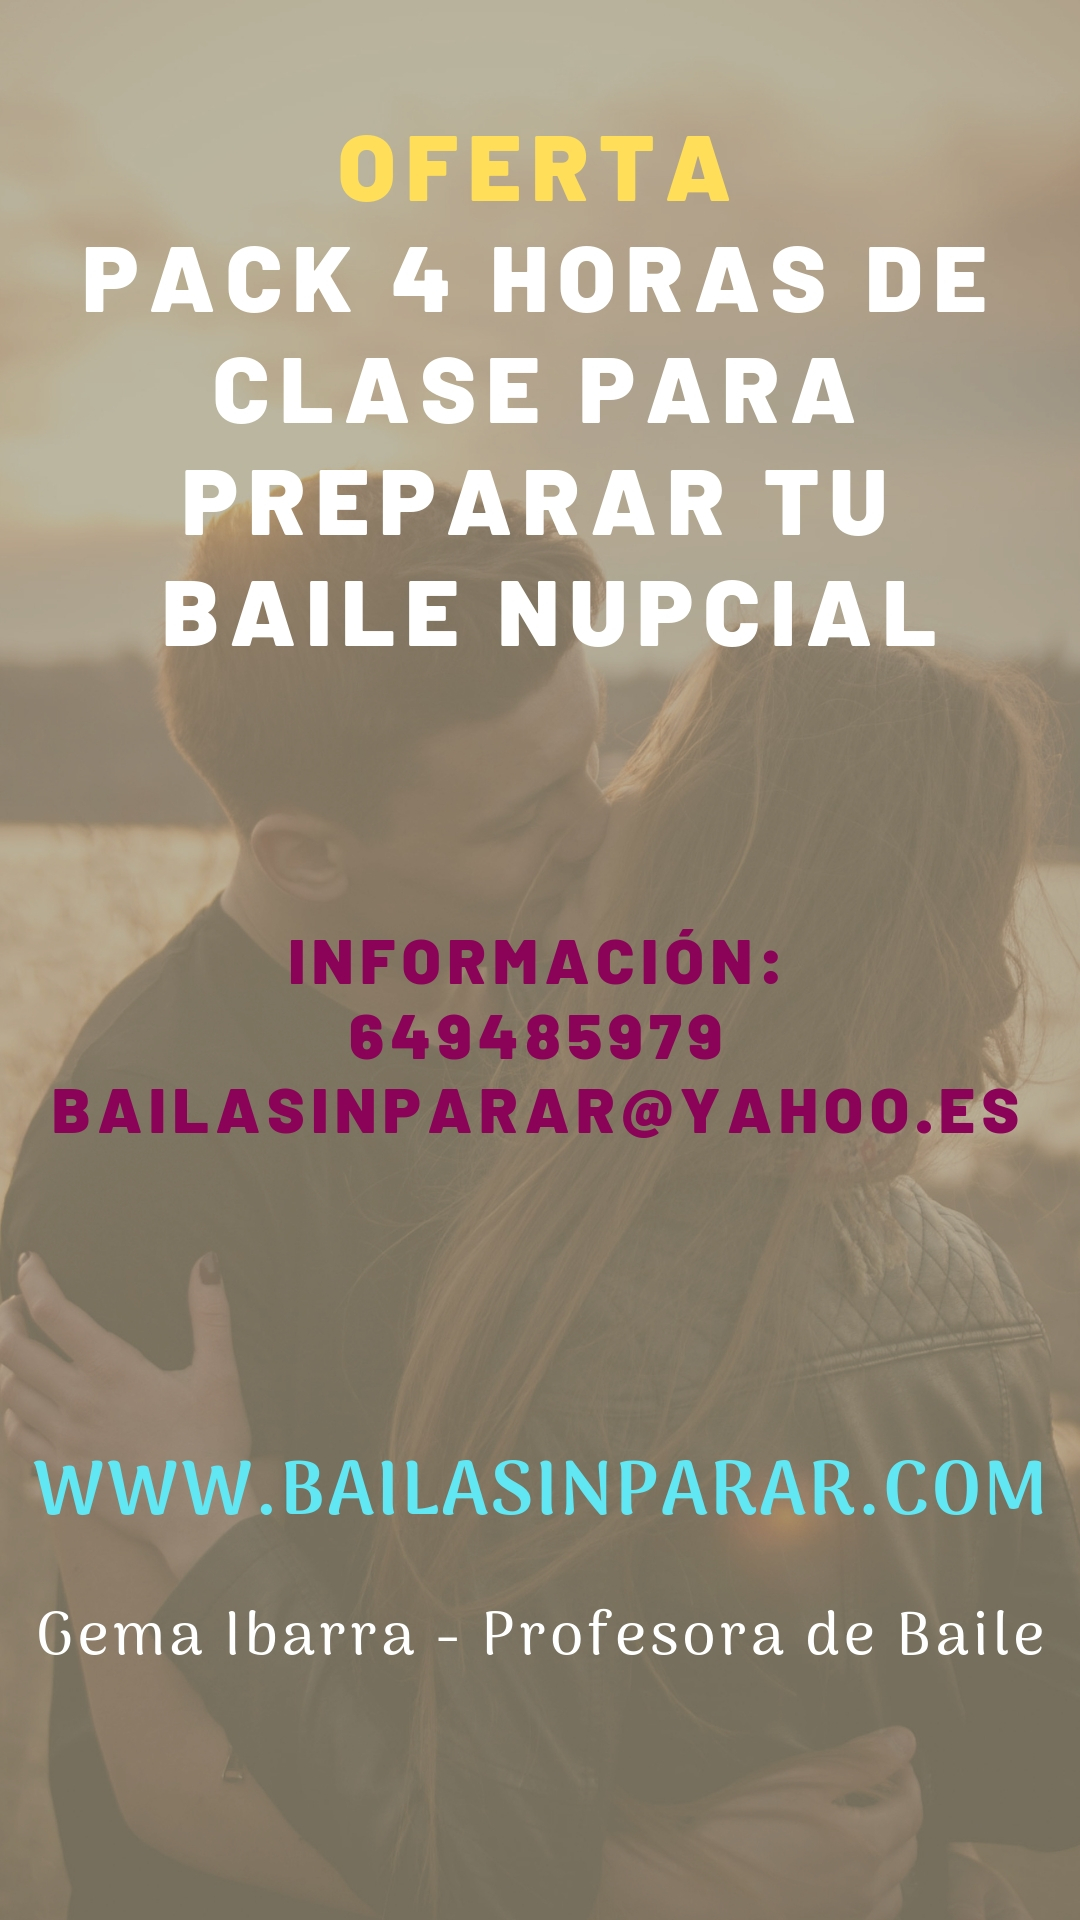 OFERTA PACK 4 HORAS CLASE BAILE NUPCIAL